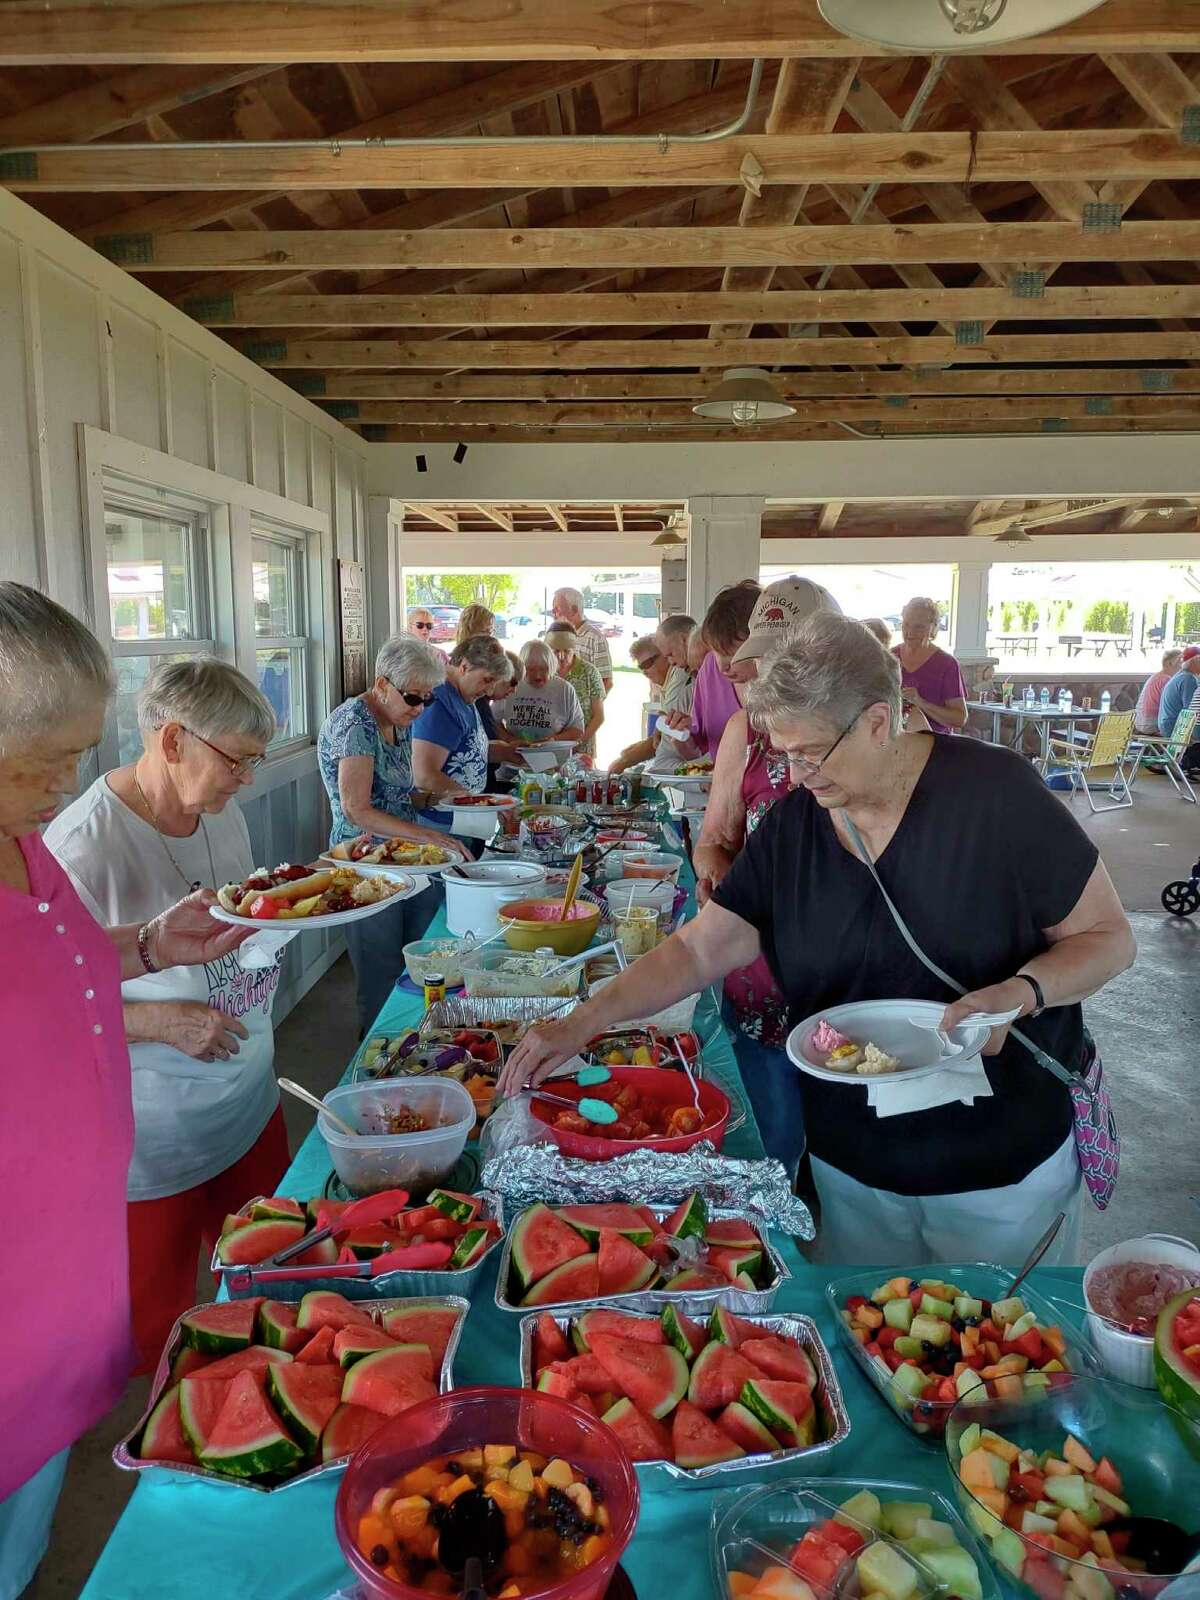 The annual senior center summer picnic was held this week on Aug. 23. (Courtesy Photo)